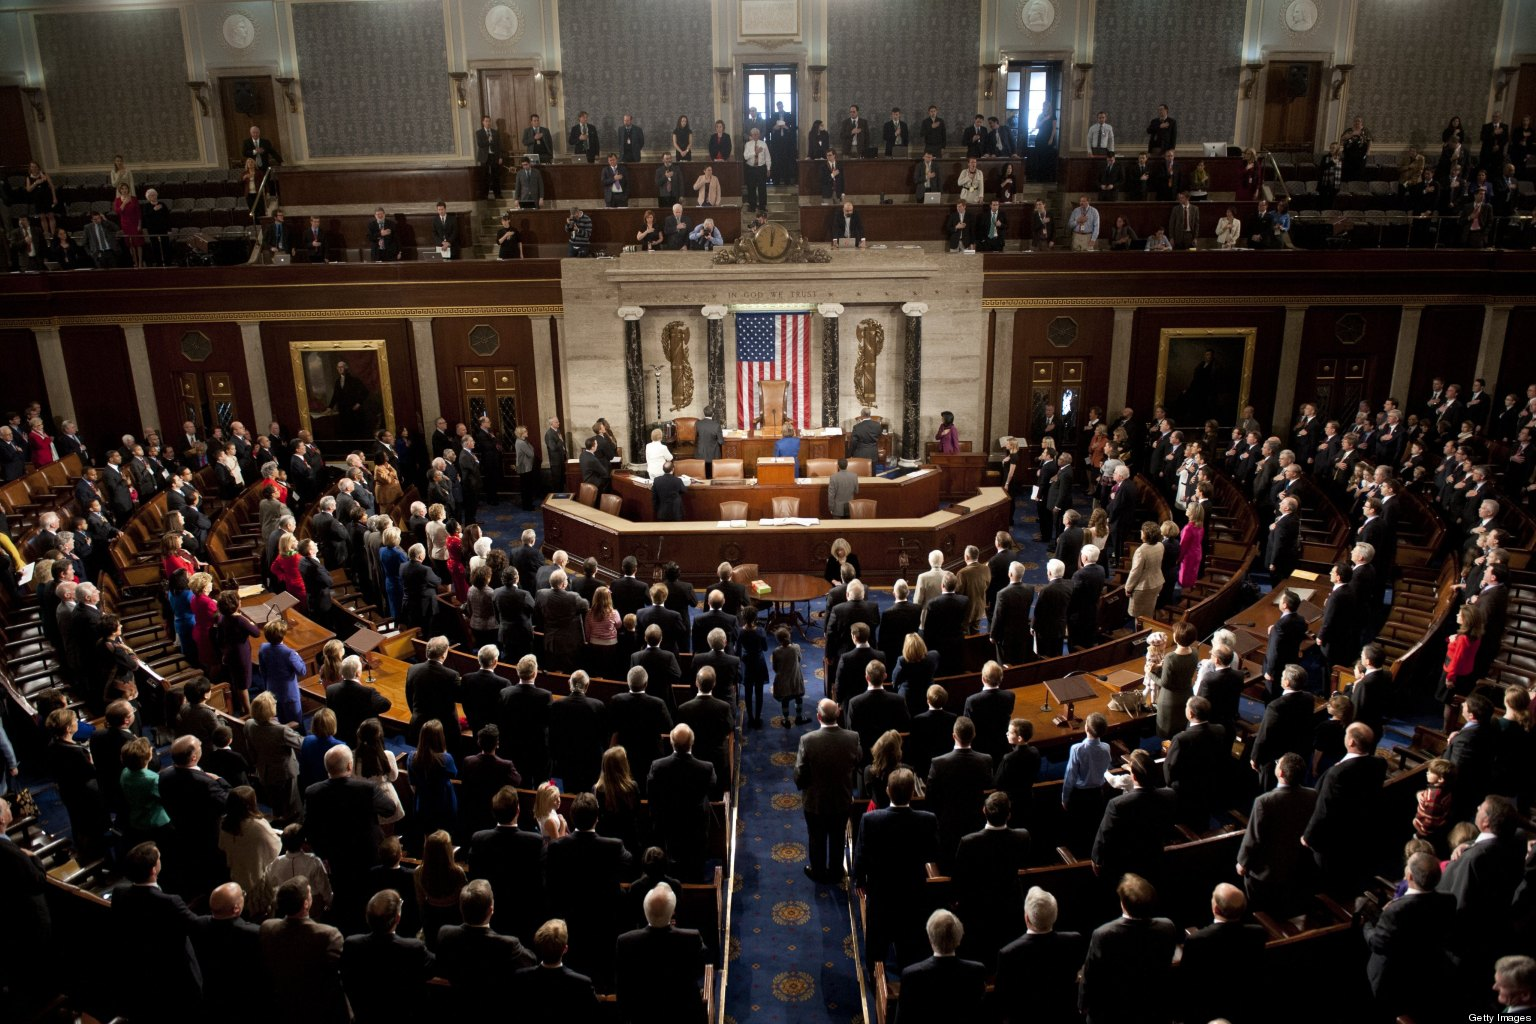 the united states congress the senate and the house of representatives The united states house of representatives is the lower chamber of the united states congress, which along with the united states senate—the upper chamber—comprises the legislative branch of the federal government of the united states.